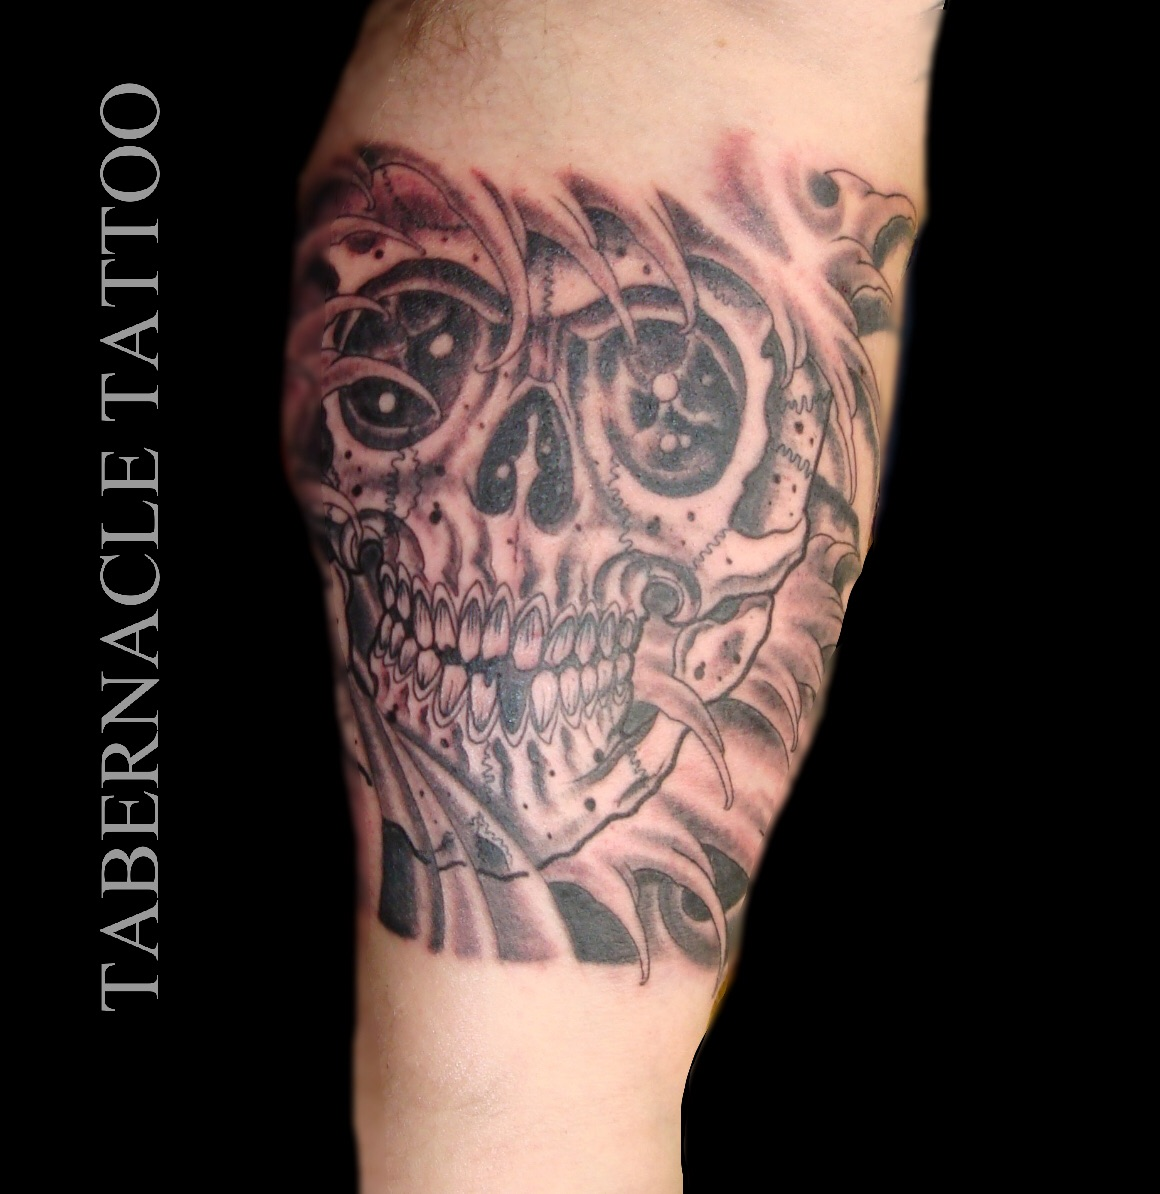 Best Tattoo Shops Tampa Tabernacle Tattoo Tampa Florida Ideas And Designs